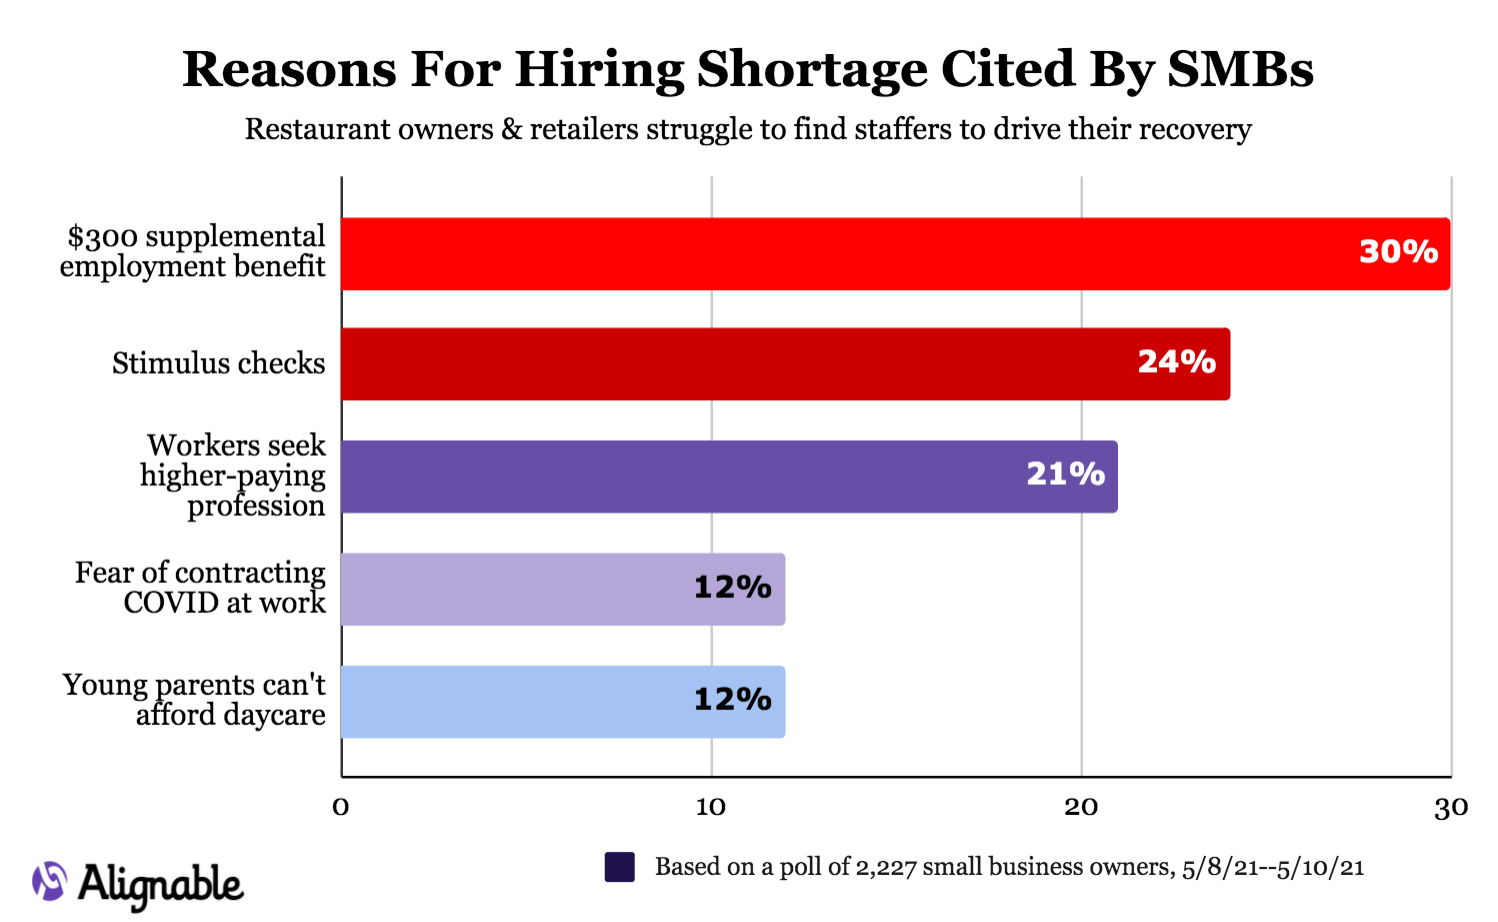 54% of Small Companies Blame Further Unemployment Profit for Employee Scarcity